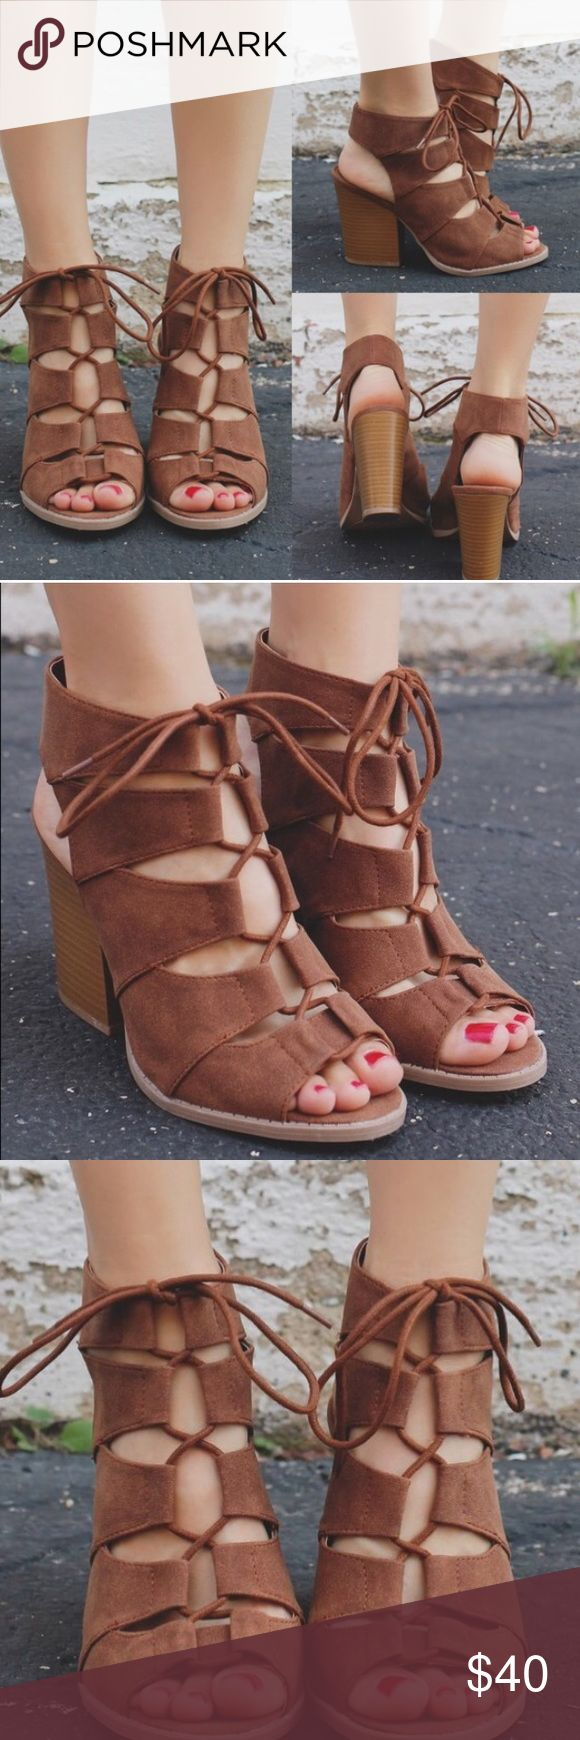 Lace up gladiator shoes NWT 4 inch heel▪️NWT▪️lace up/gladiator style▪️chunky heel▪️cognac▪️selling bc school doesn't allow Splendid Shoes Ankle Boots & Booties